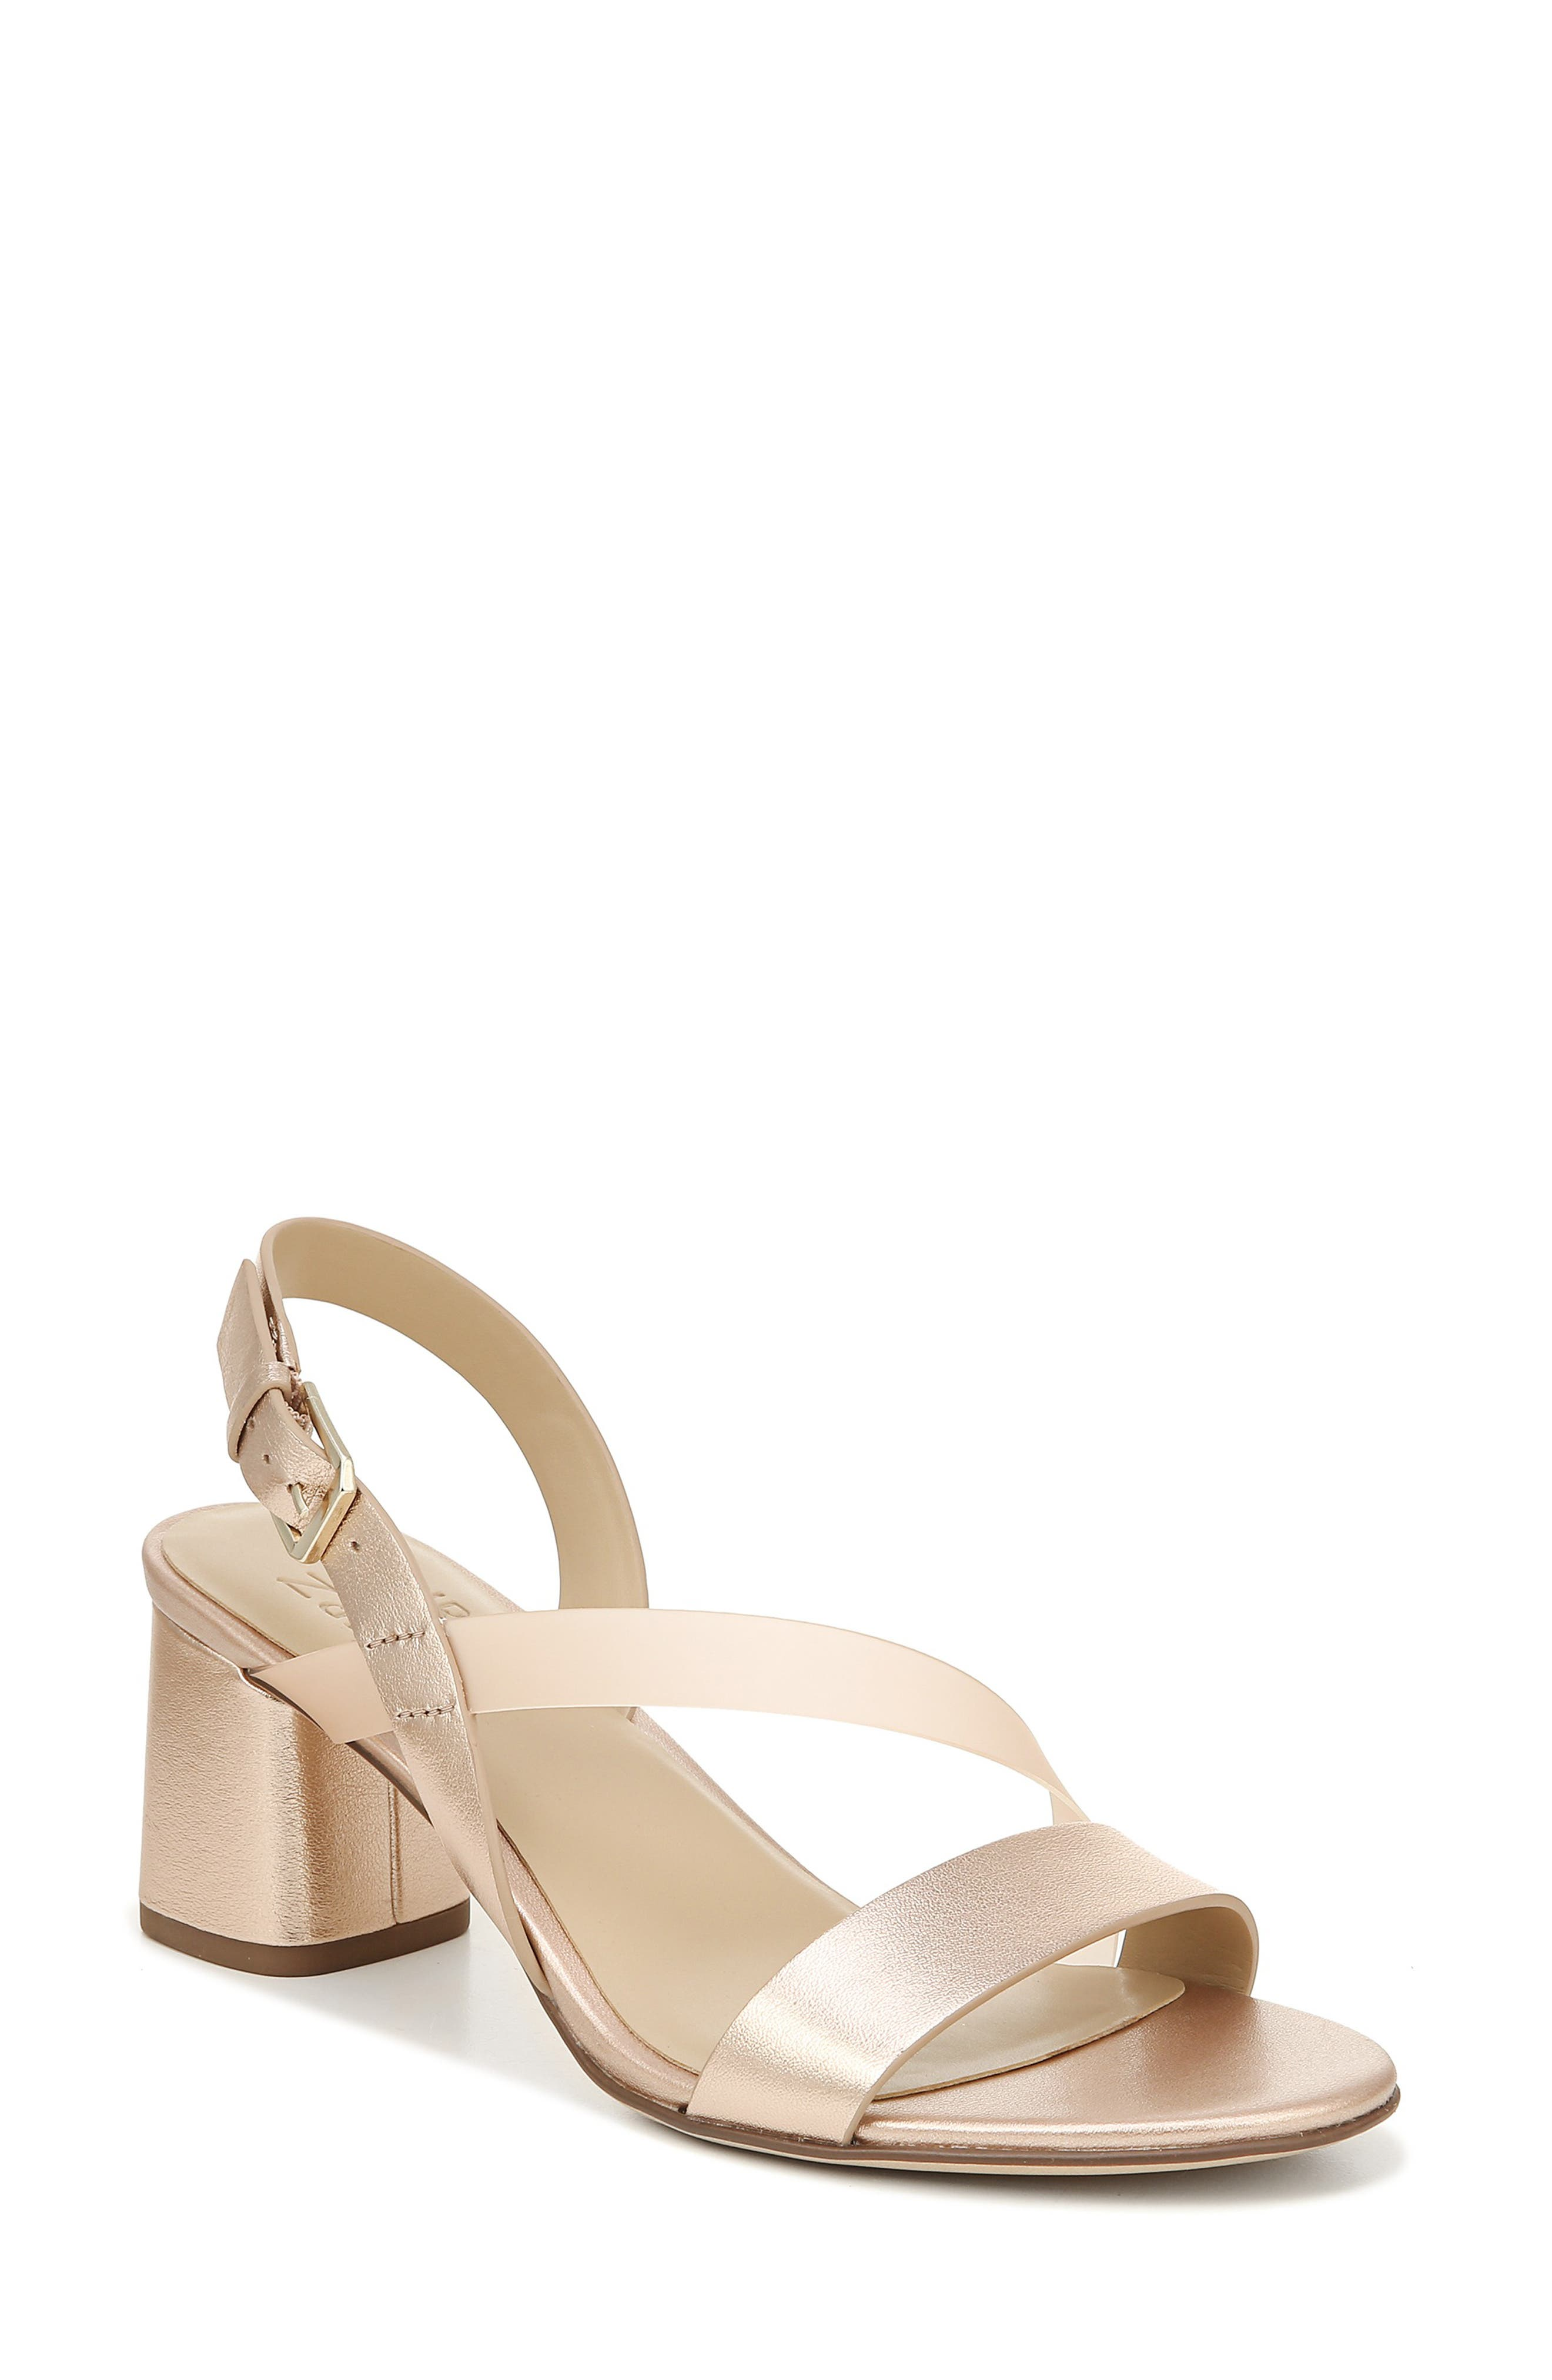 NATURALIZER, Arianna Block Heel Sandal, Main thumbnail 1, color, ROSE GOLD LEATHER